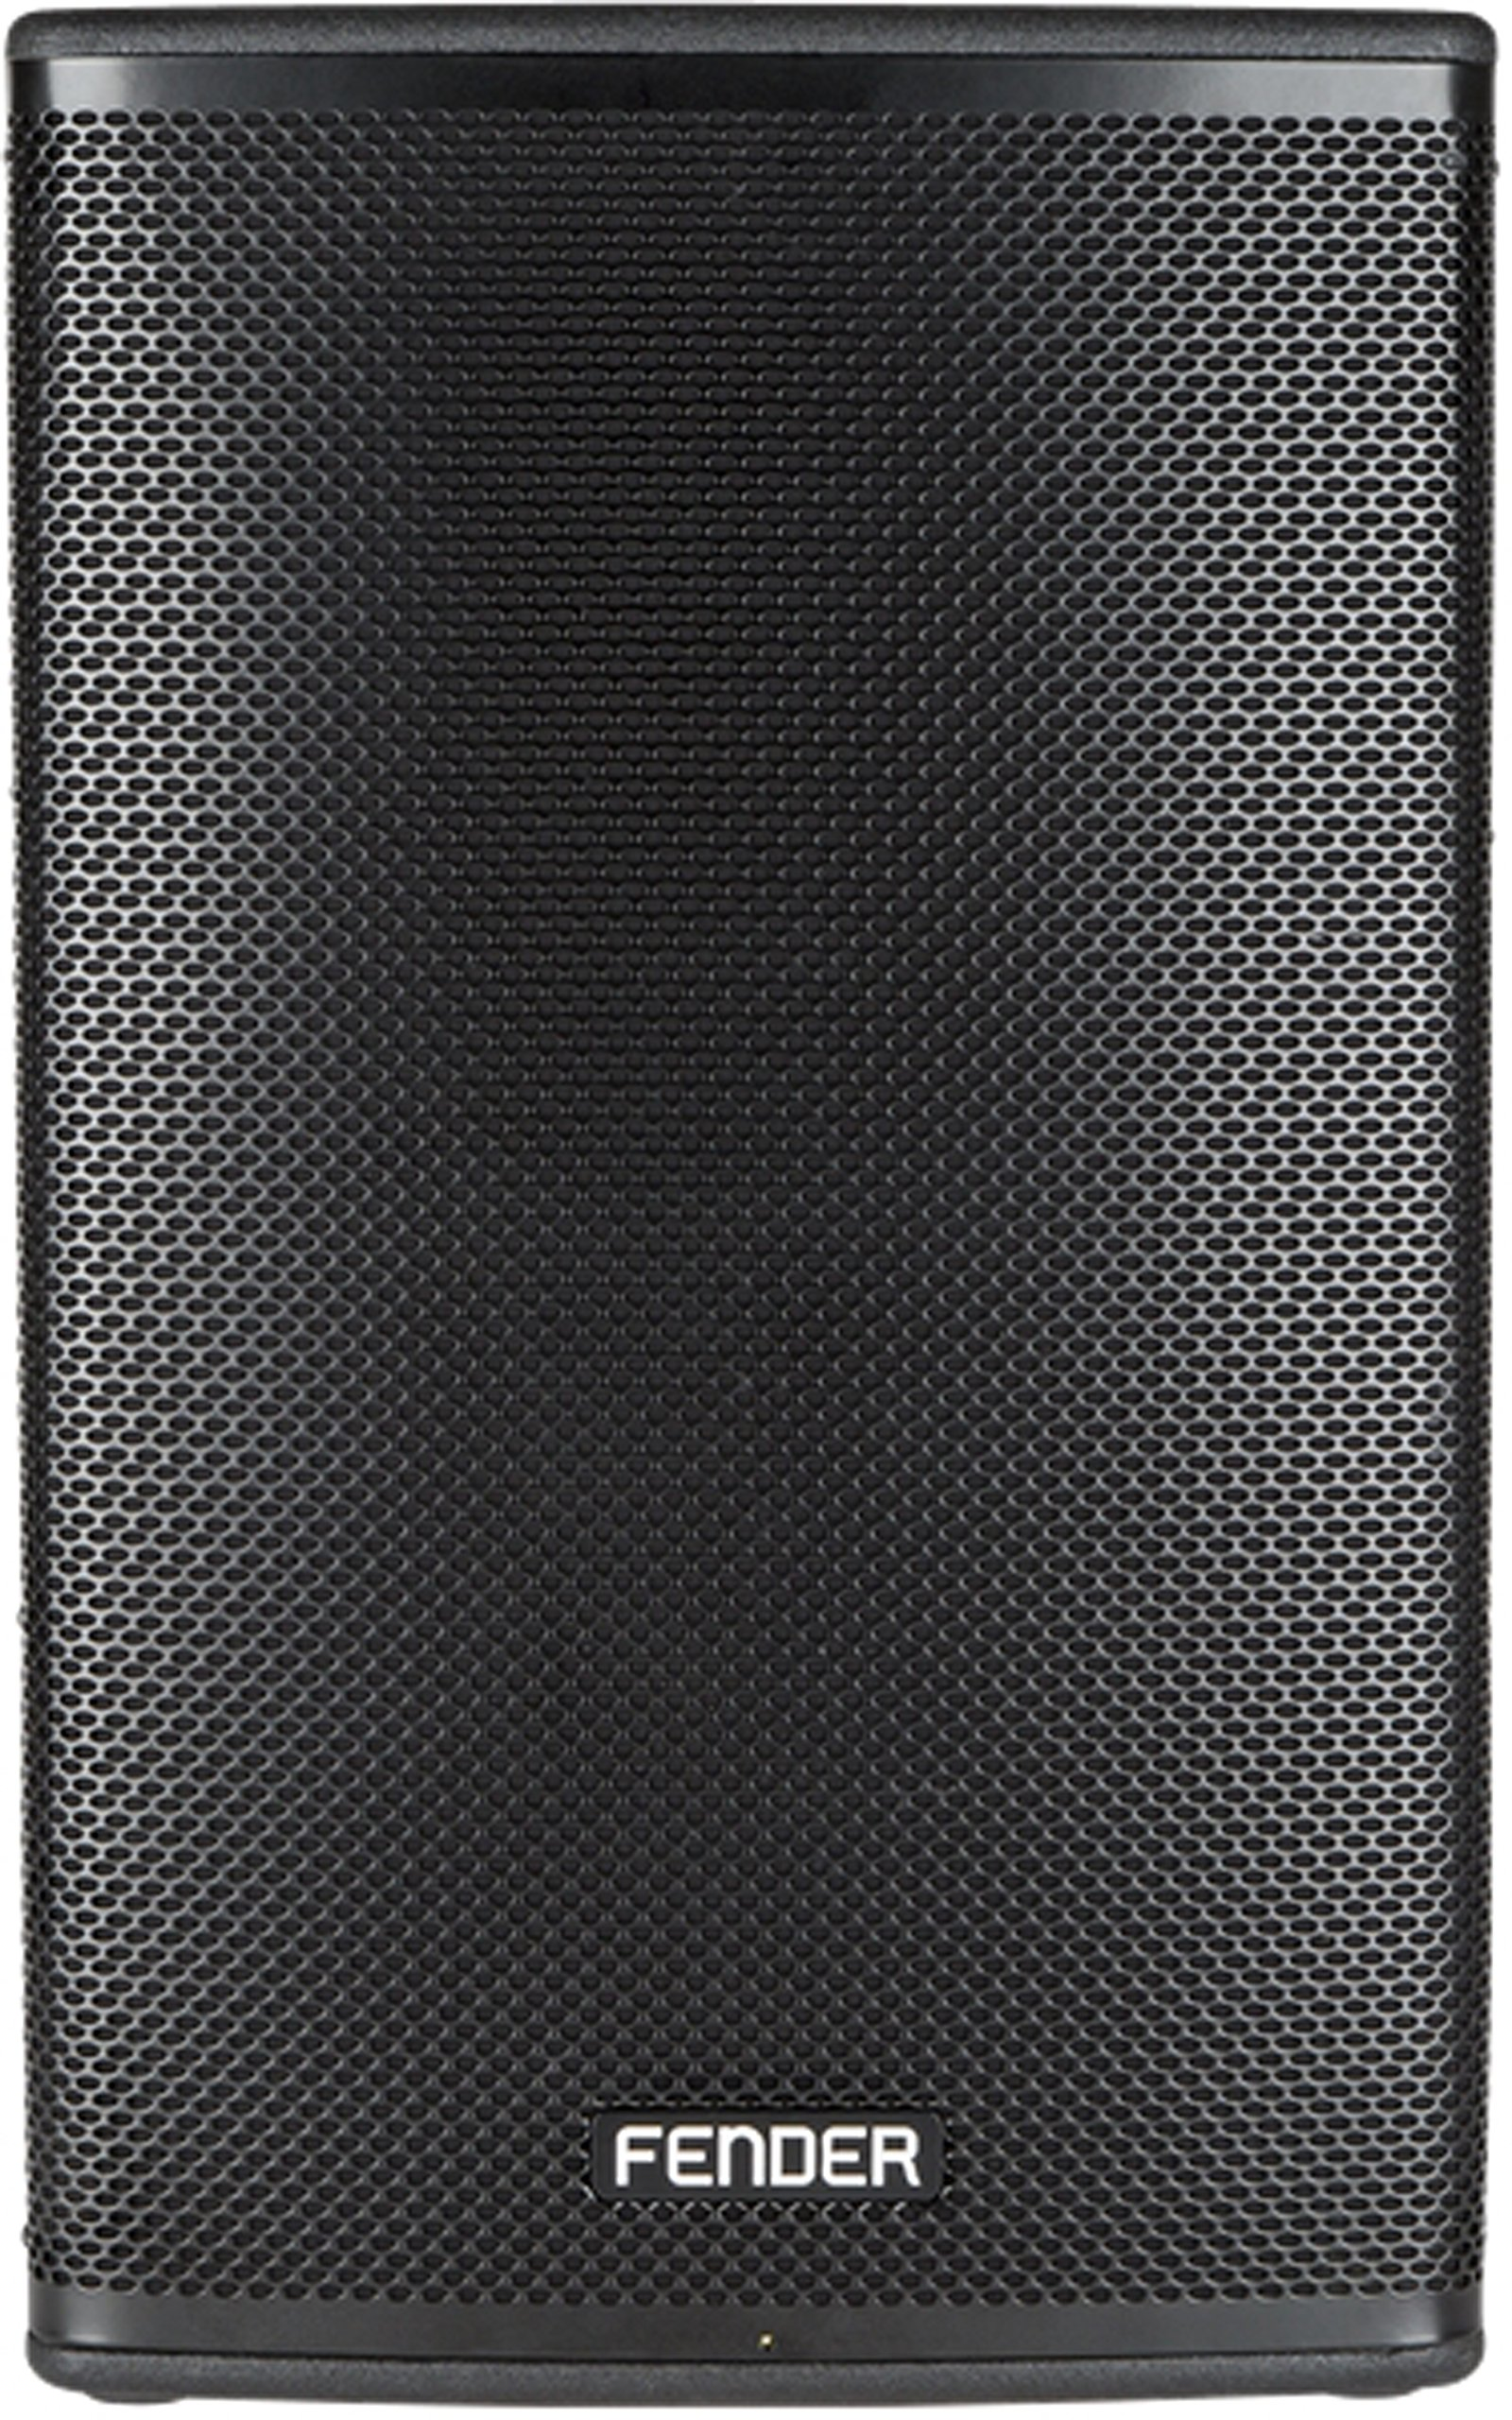 Fender Fortis F-15BT 15'' Powered Speaker 1300 Watts